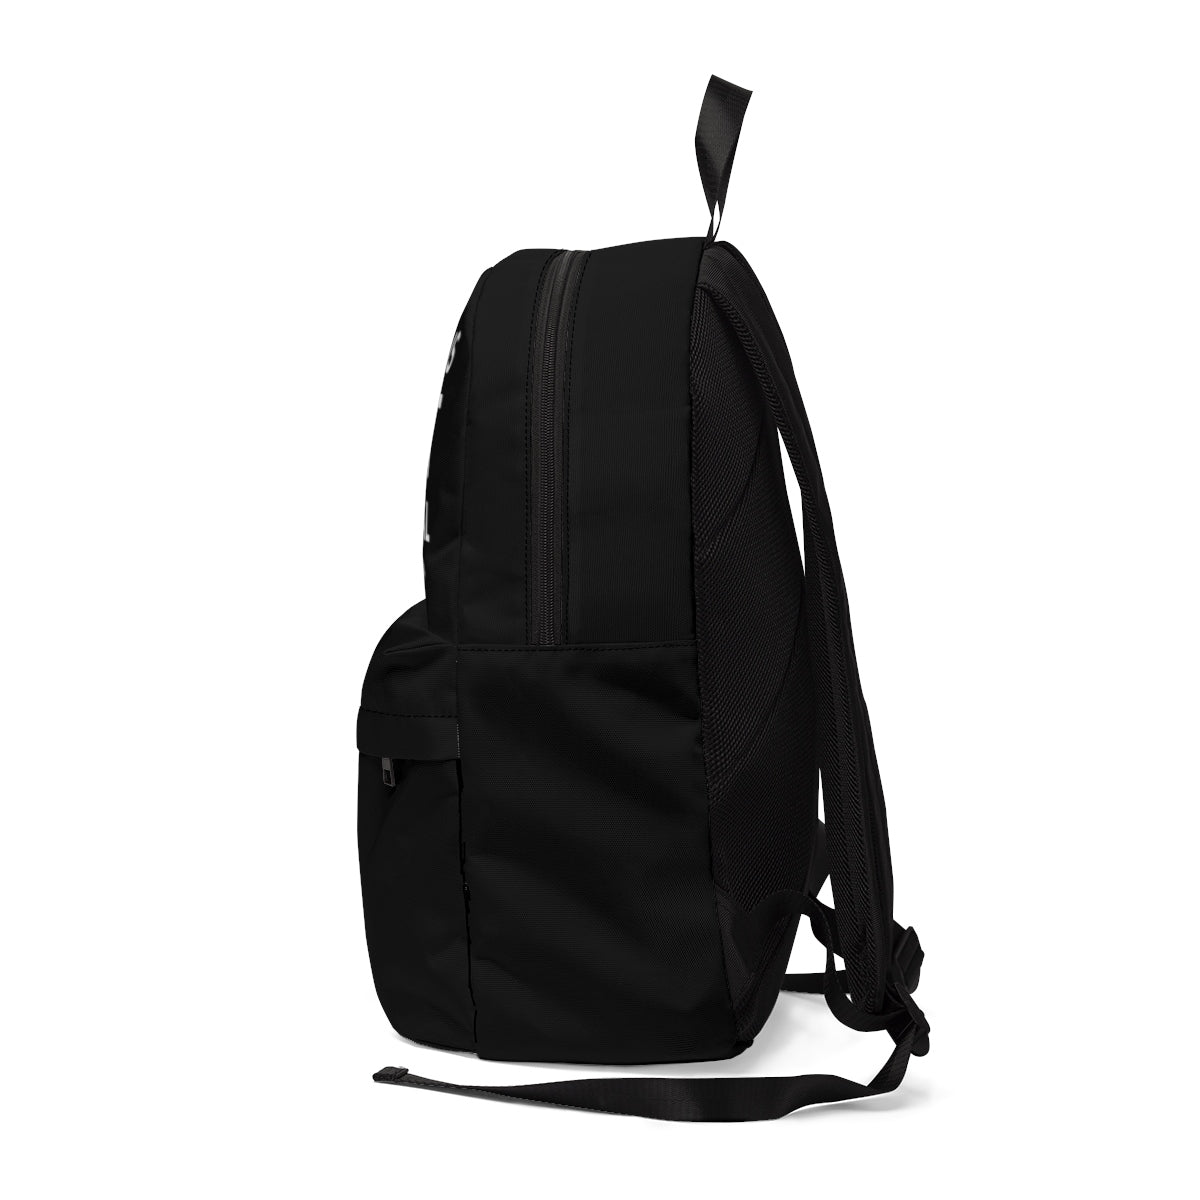 This is Not Normal Unisex Classic Backpack